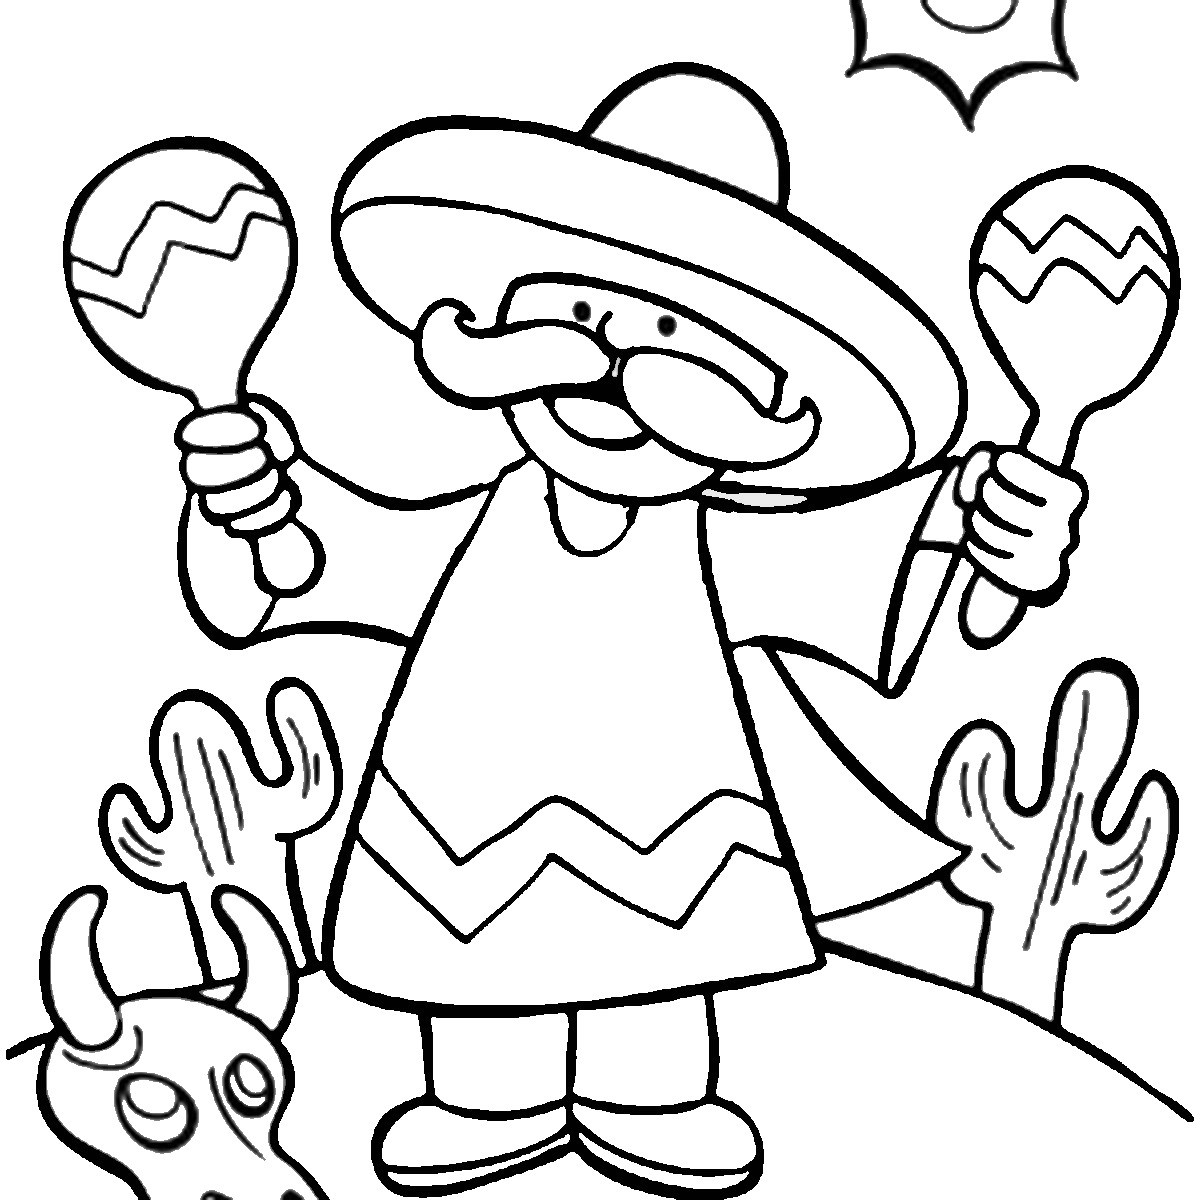 Fiesta Coloring Pages Free Printable At Getdrawings